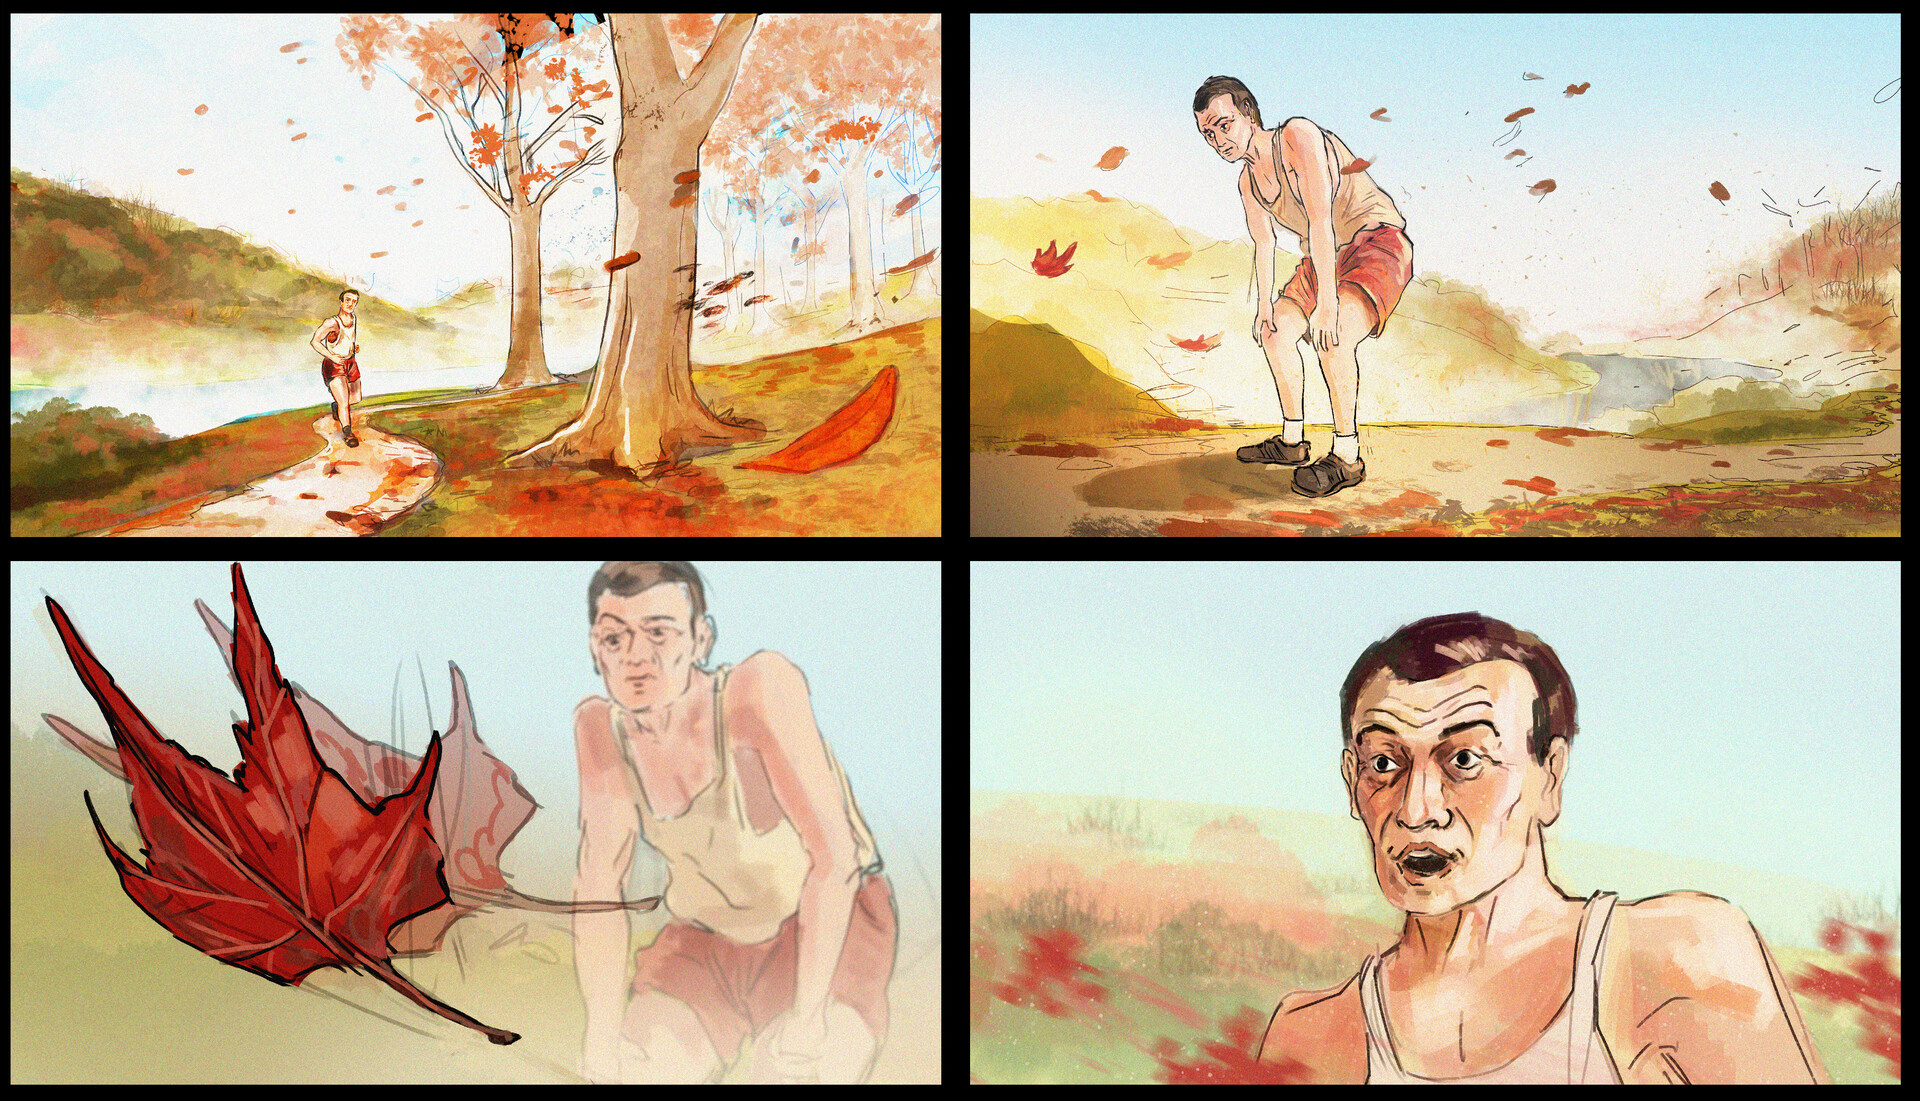 Tom p mackintosh storyboardx